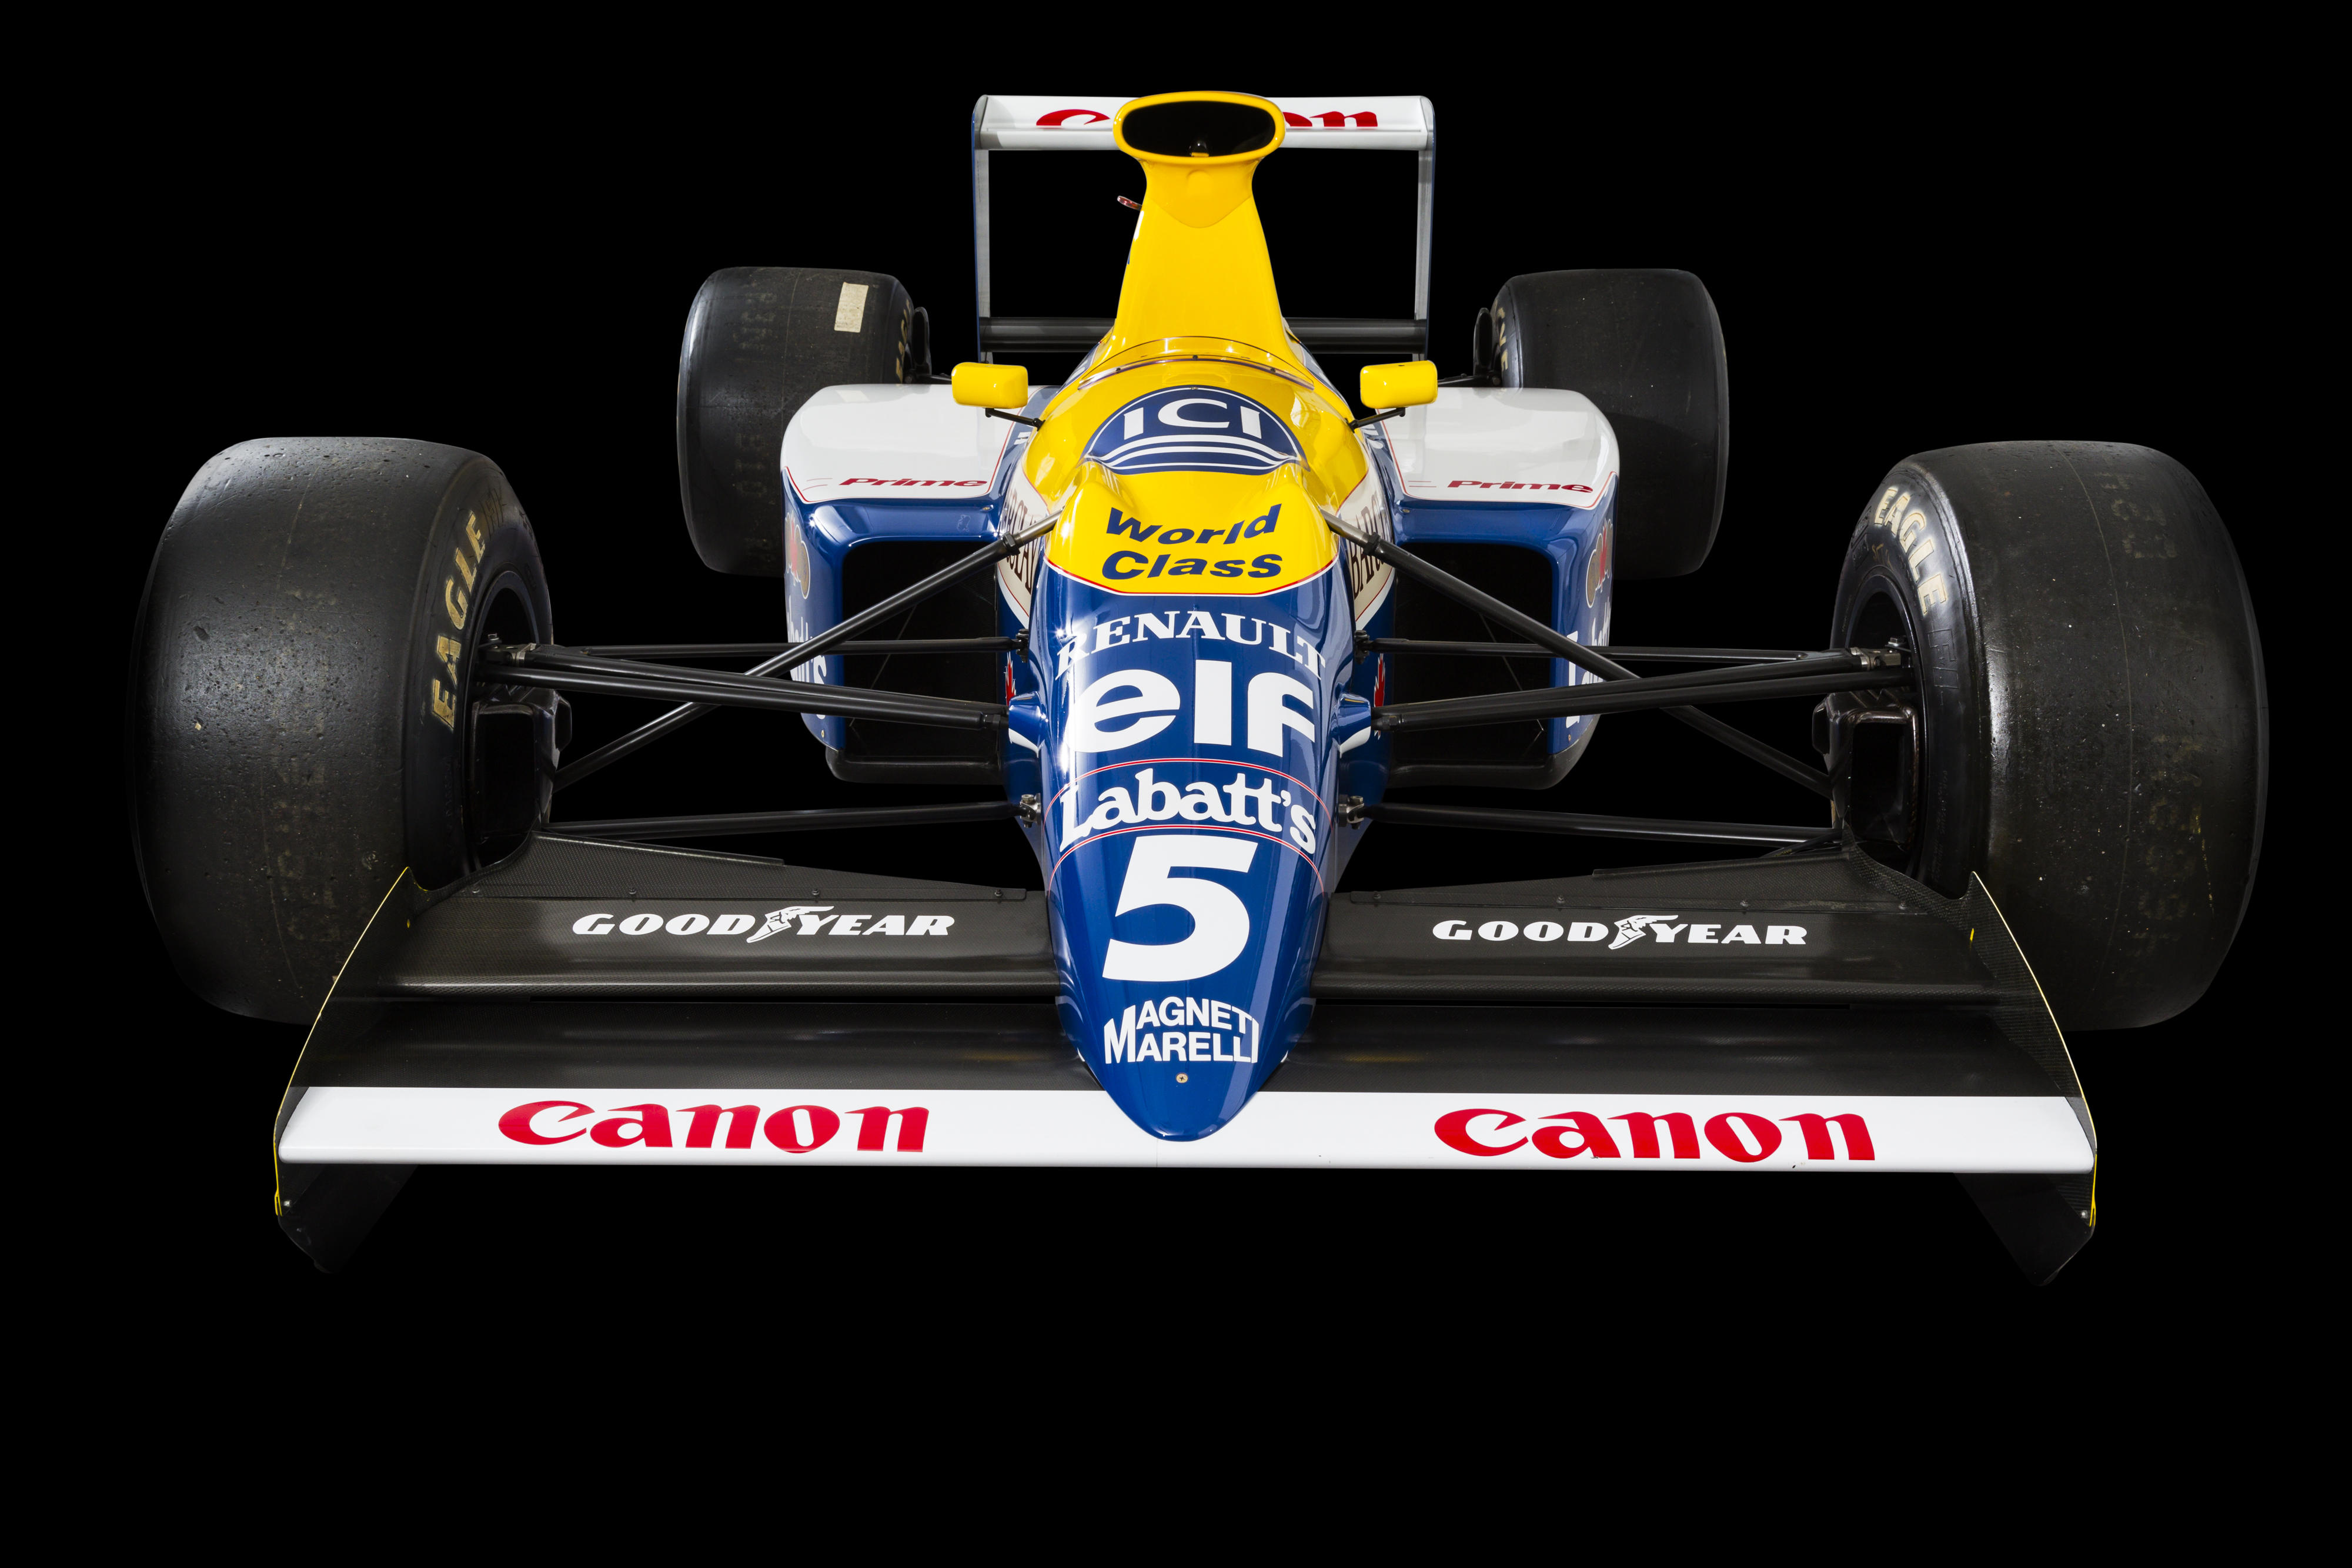 This Williams Formula 1 Car Can be Yours for Mercedes-Benz ...